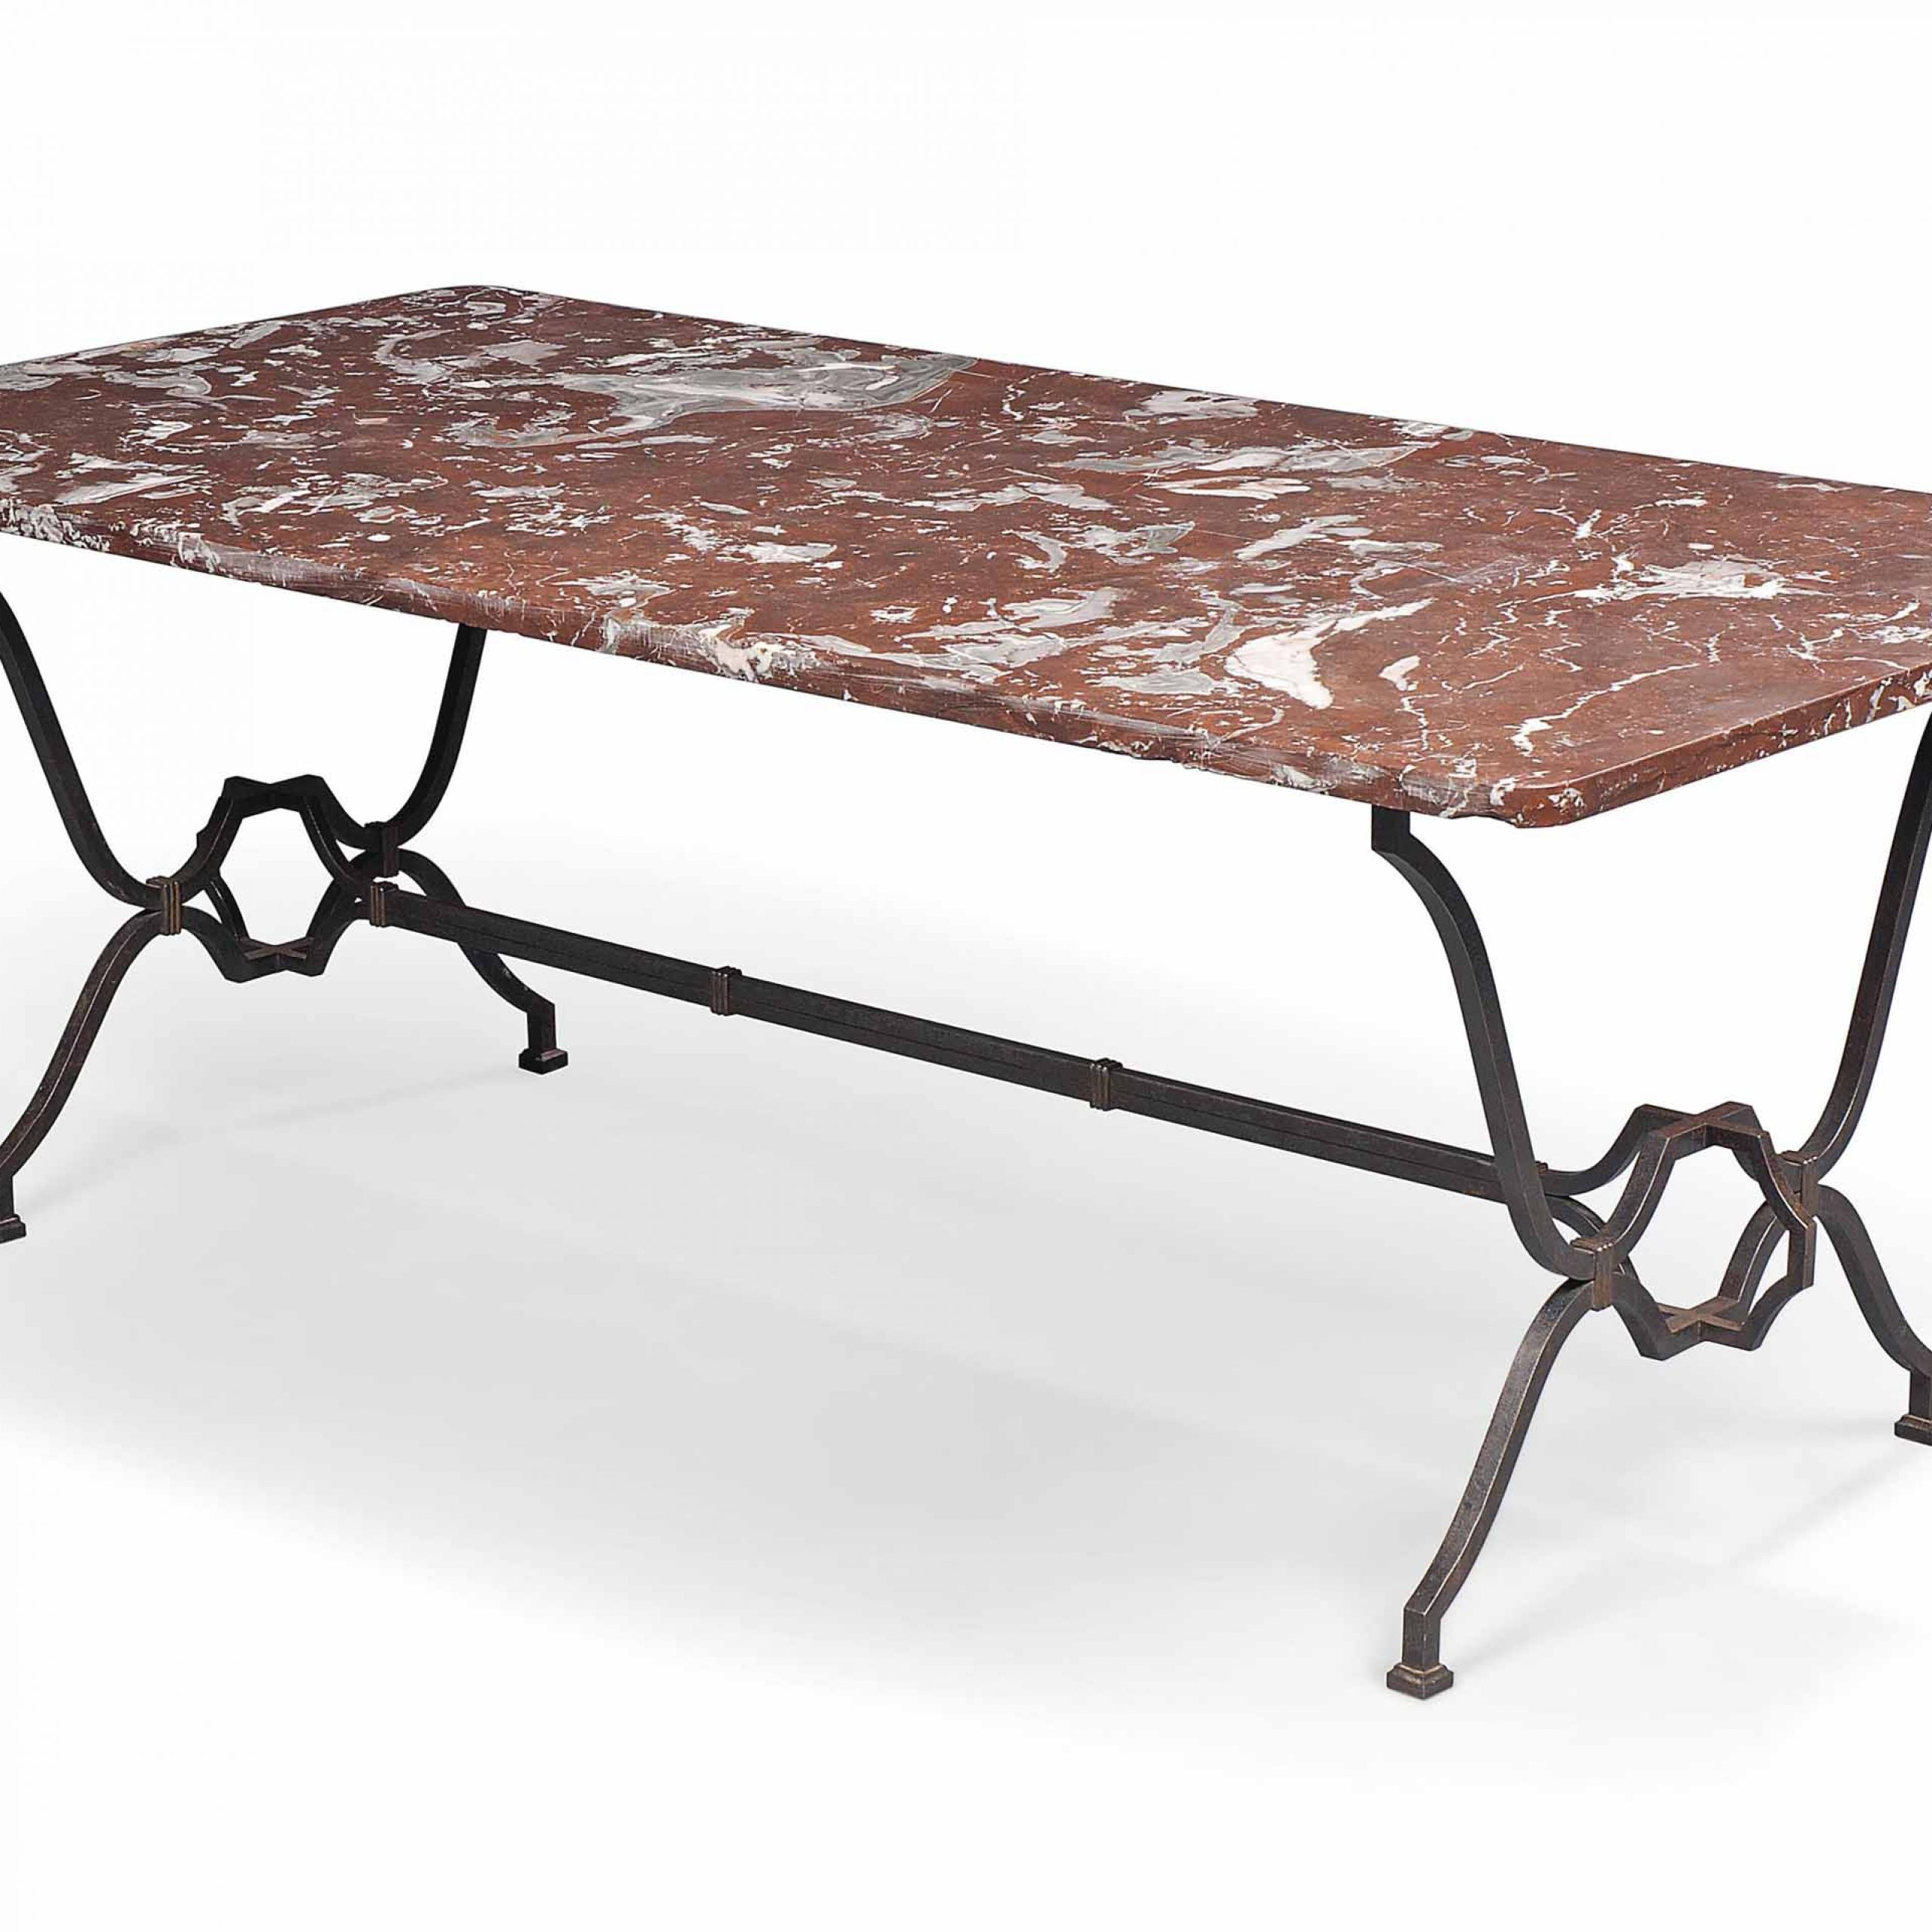 A French Wrought Iron And Marble Dining Table | Mid 20Th In 2017 Christie Round Marble Dining Tables (View 9 of 25)